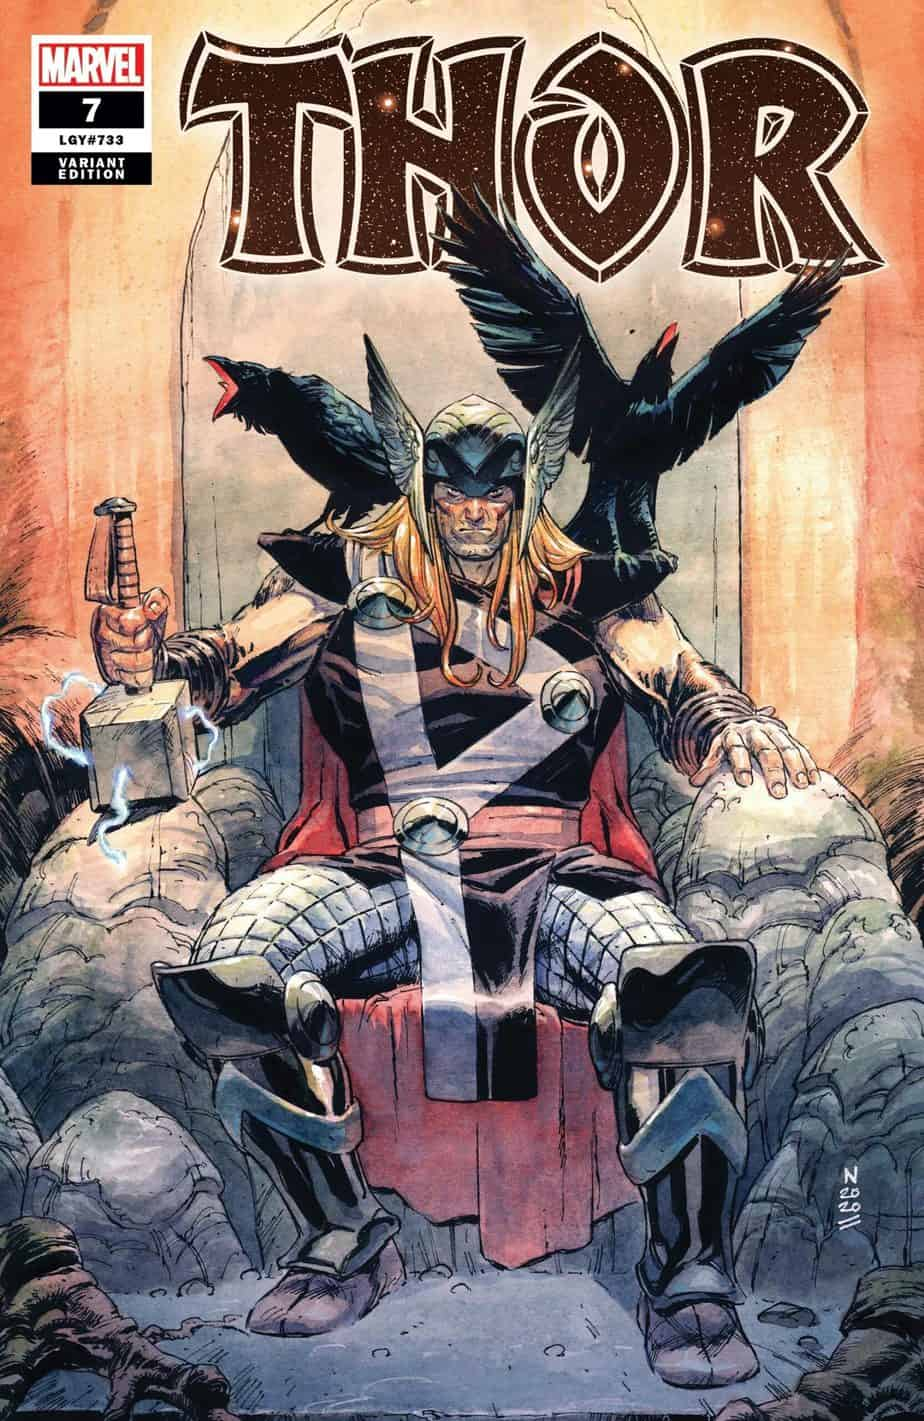 THOR #7 - Cover B